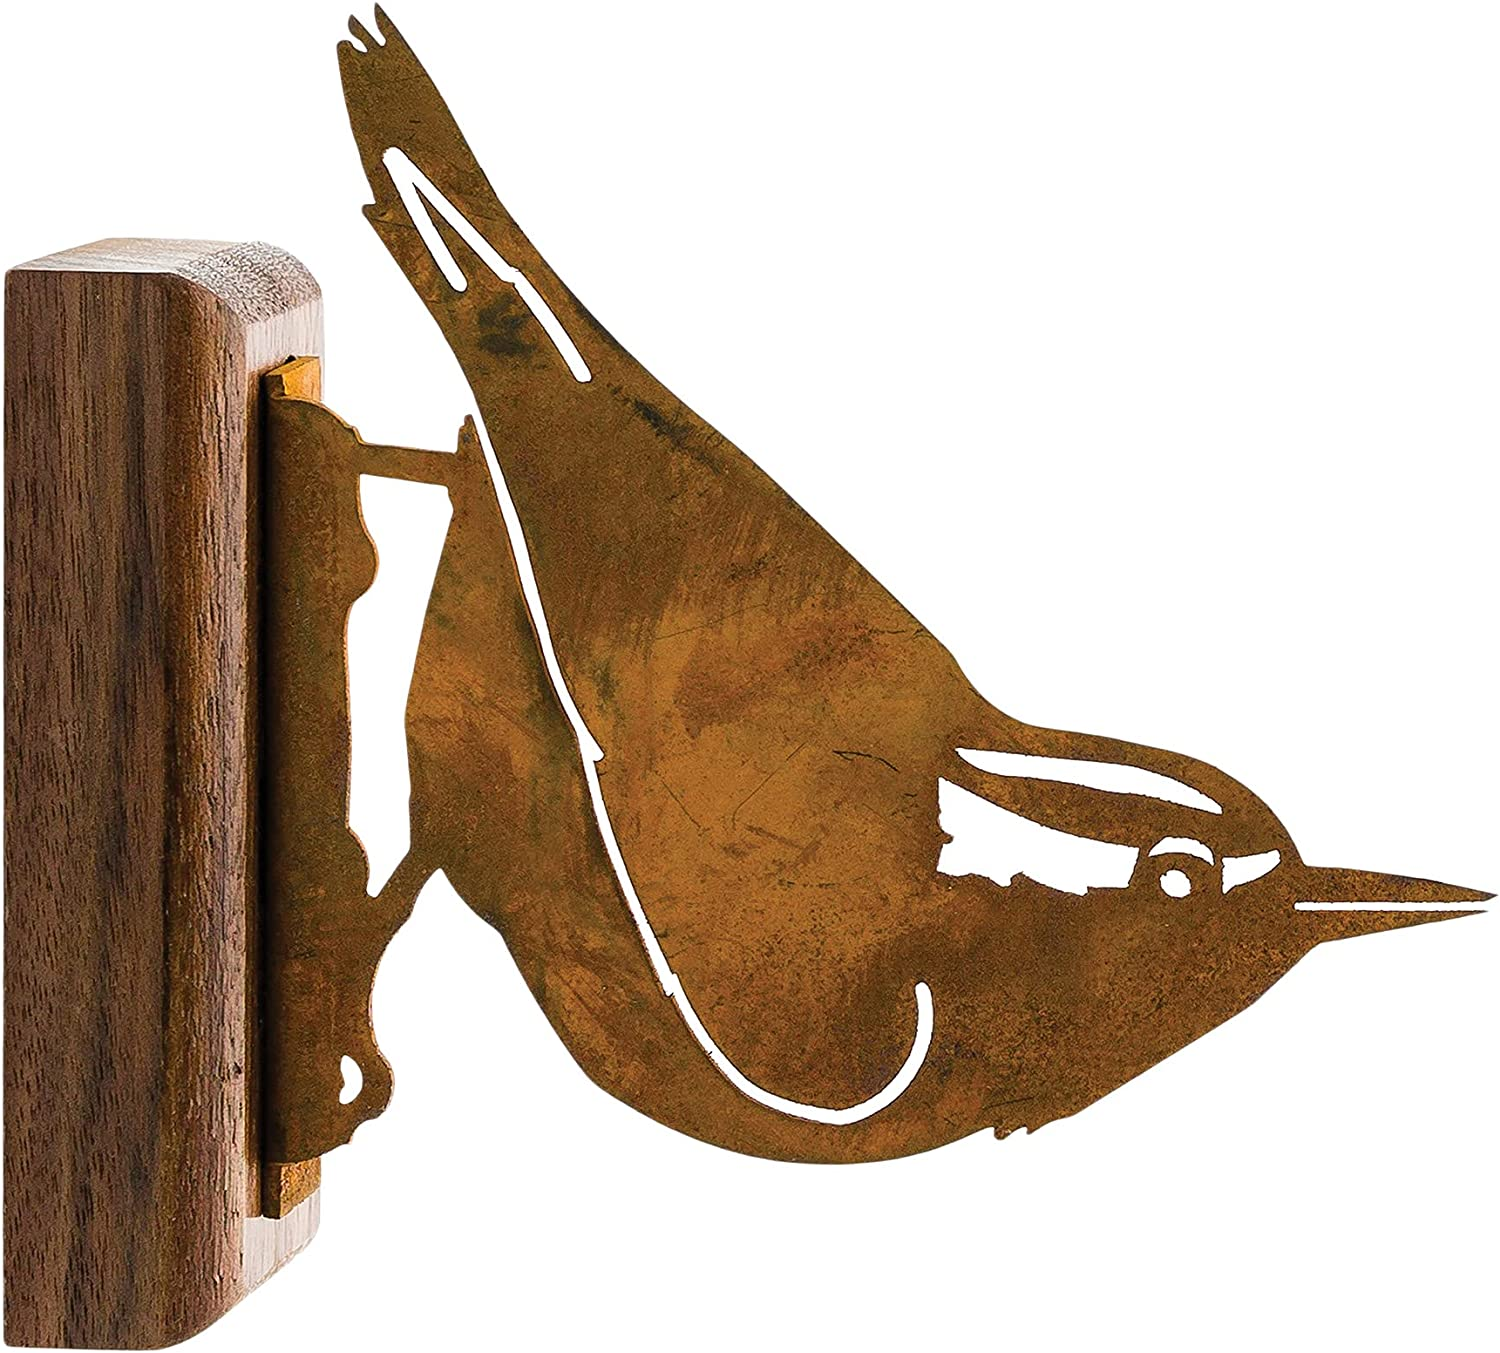 Safety and trust Elegant Garden Design Nuthatch Steel Pati with Rusty Max 76% OFF Silhouette